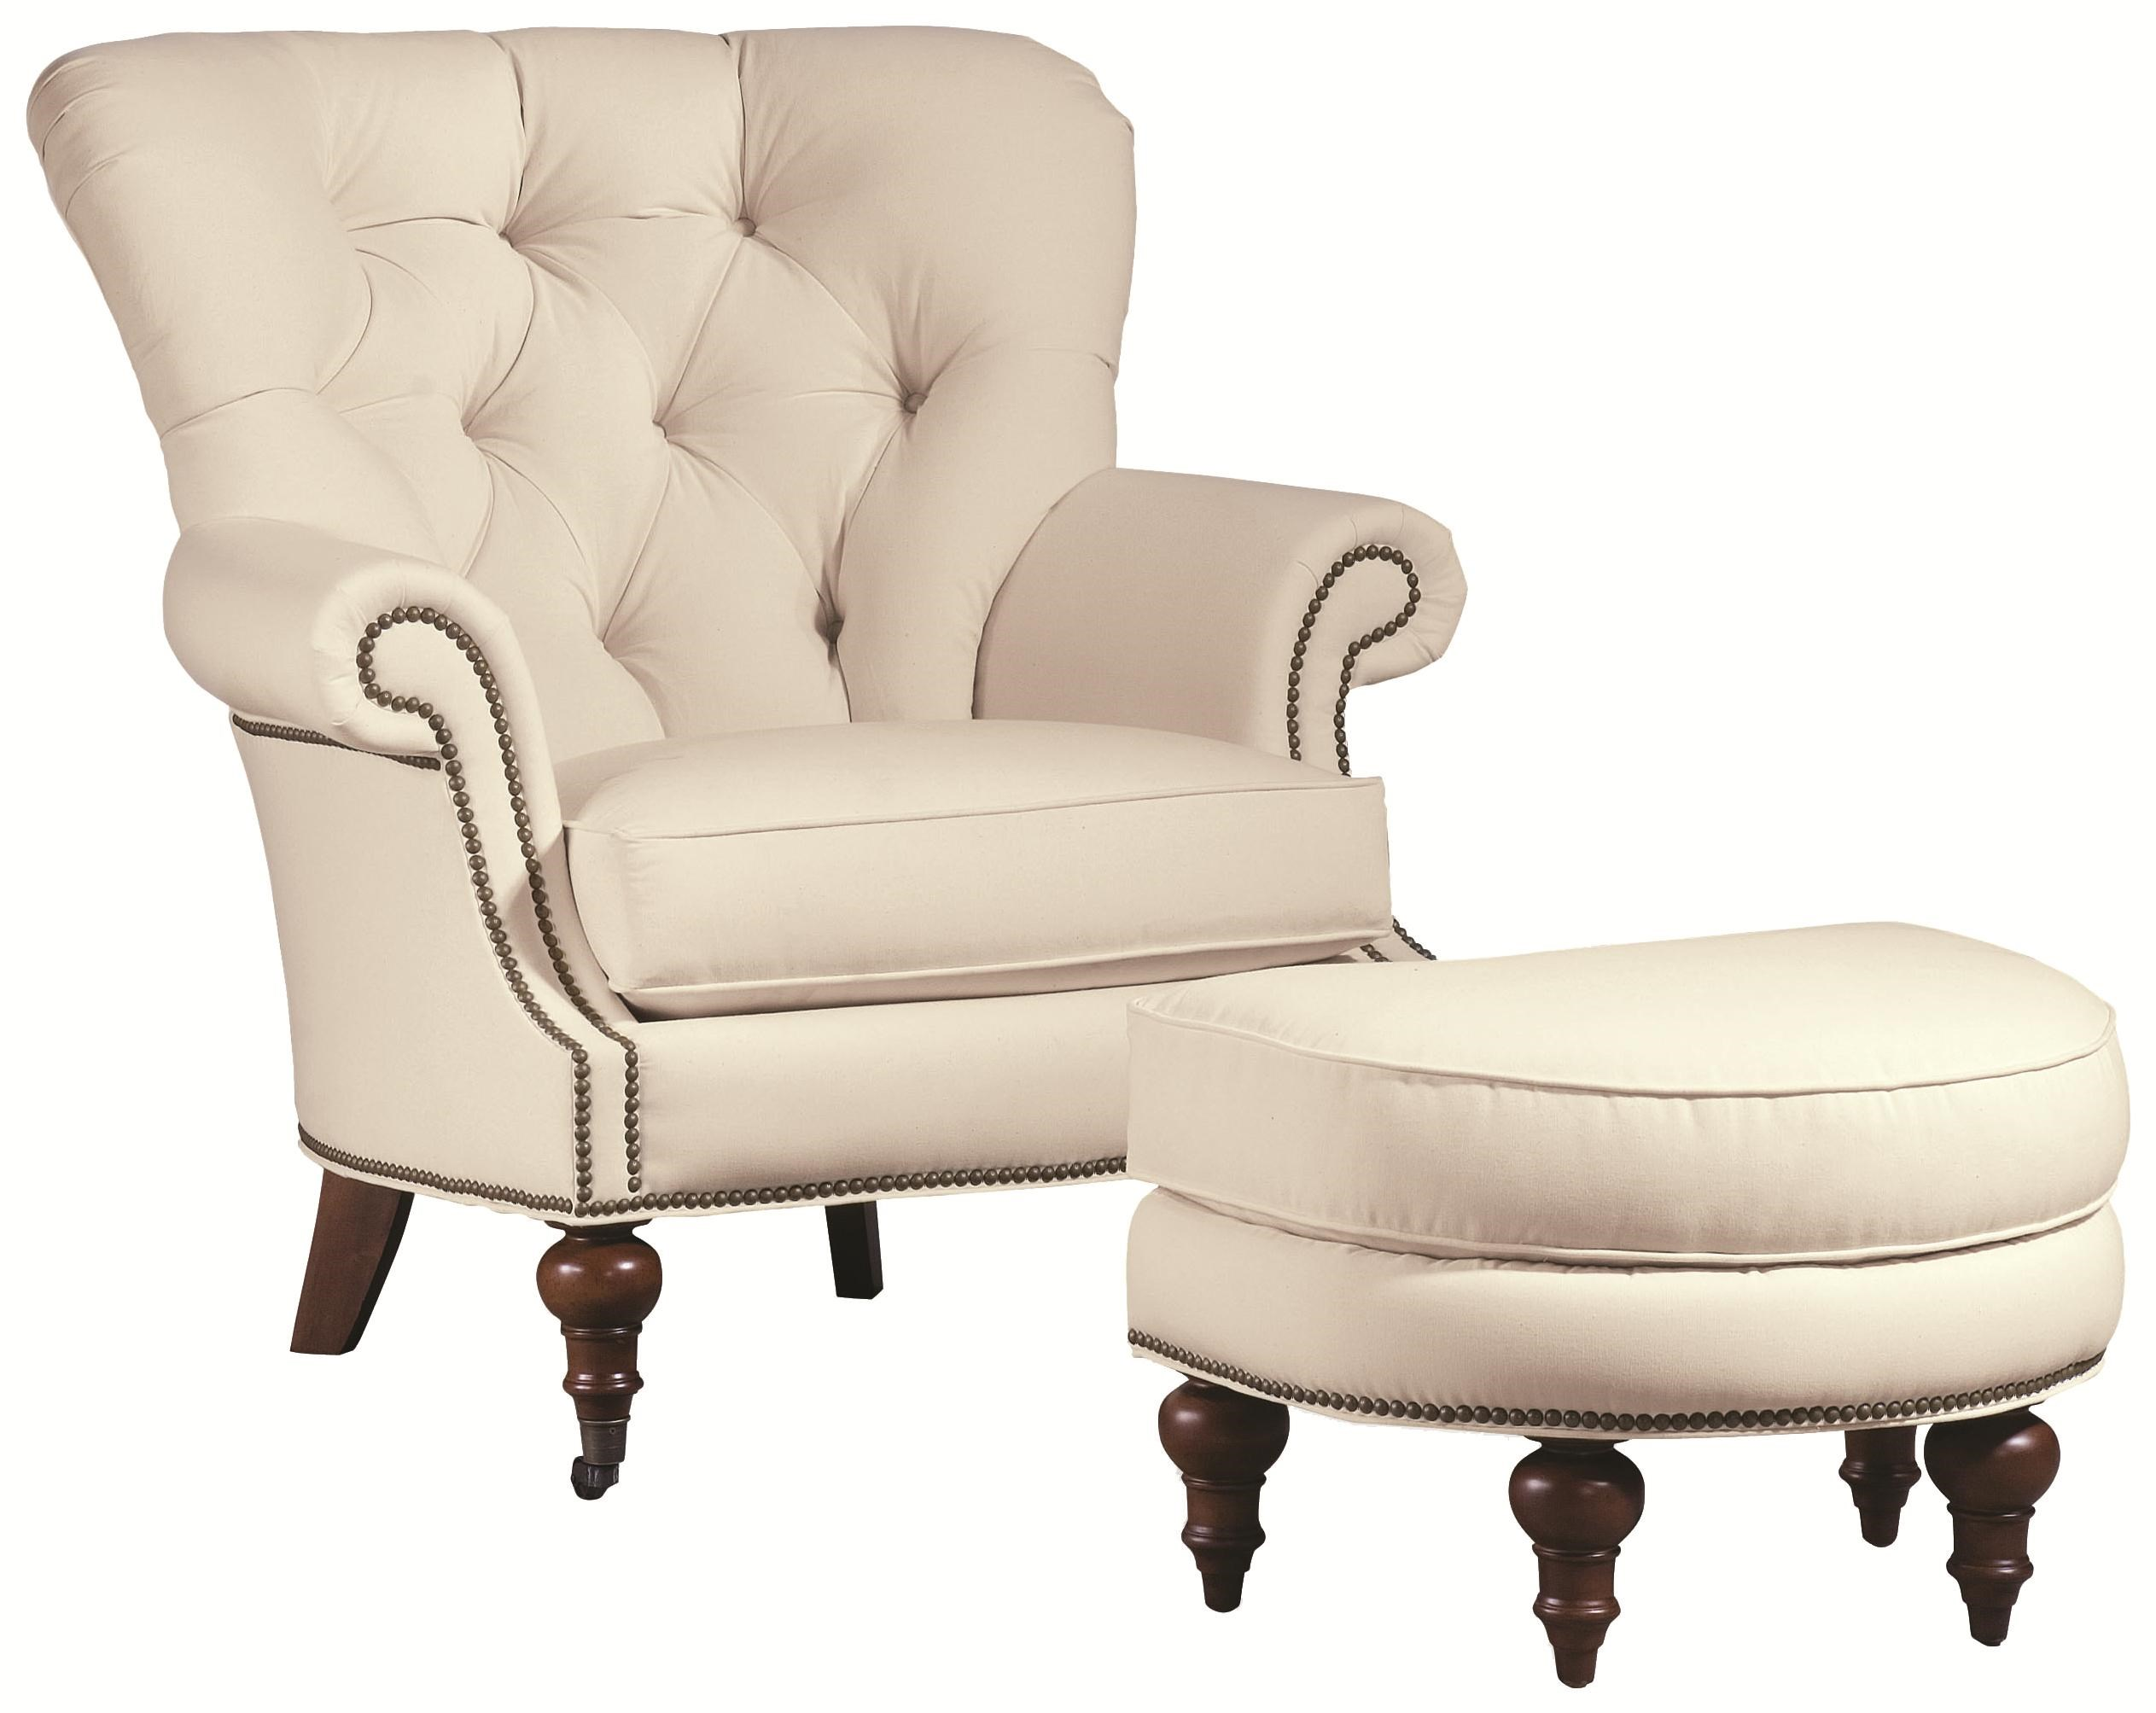 Thomasville® Upholstered Chairs And Ottomans Vienna Tufted Back Chair And Ottoman  Set